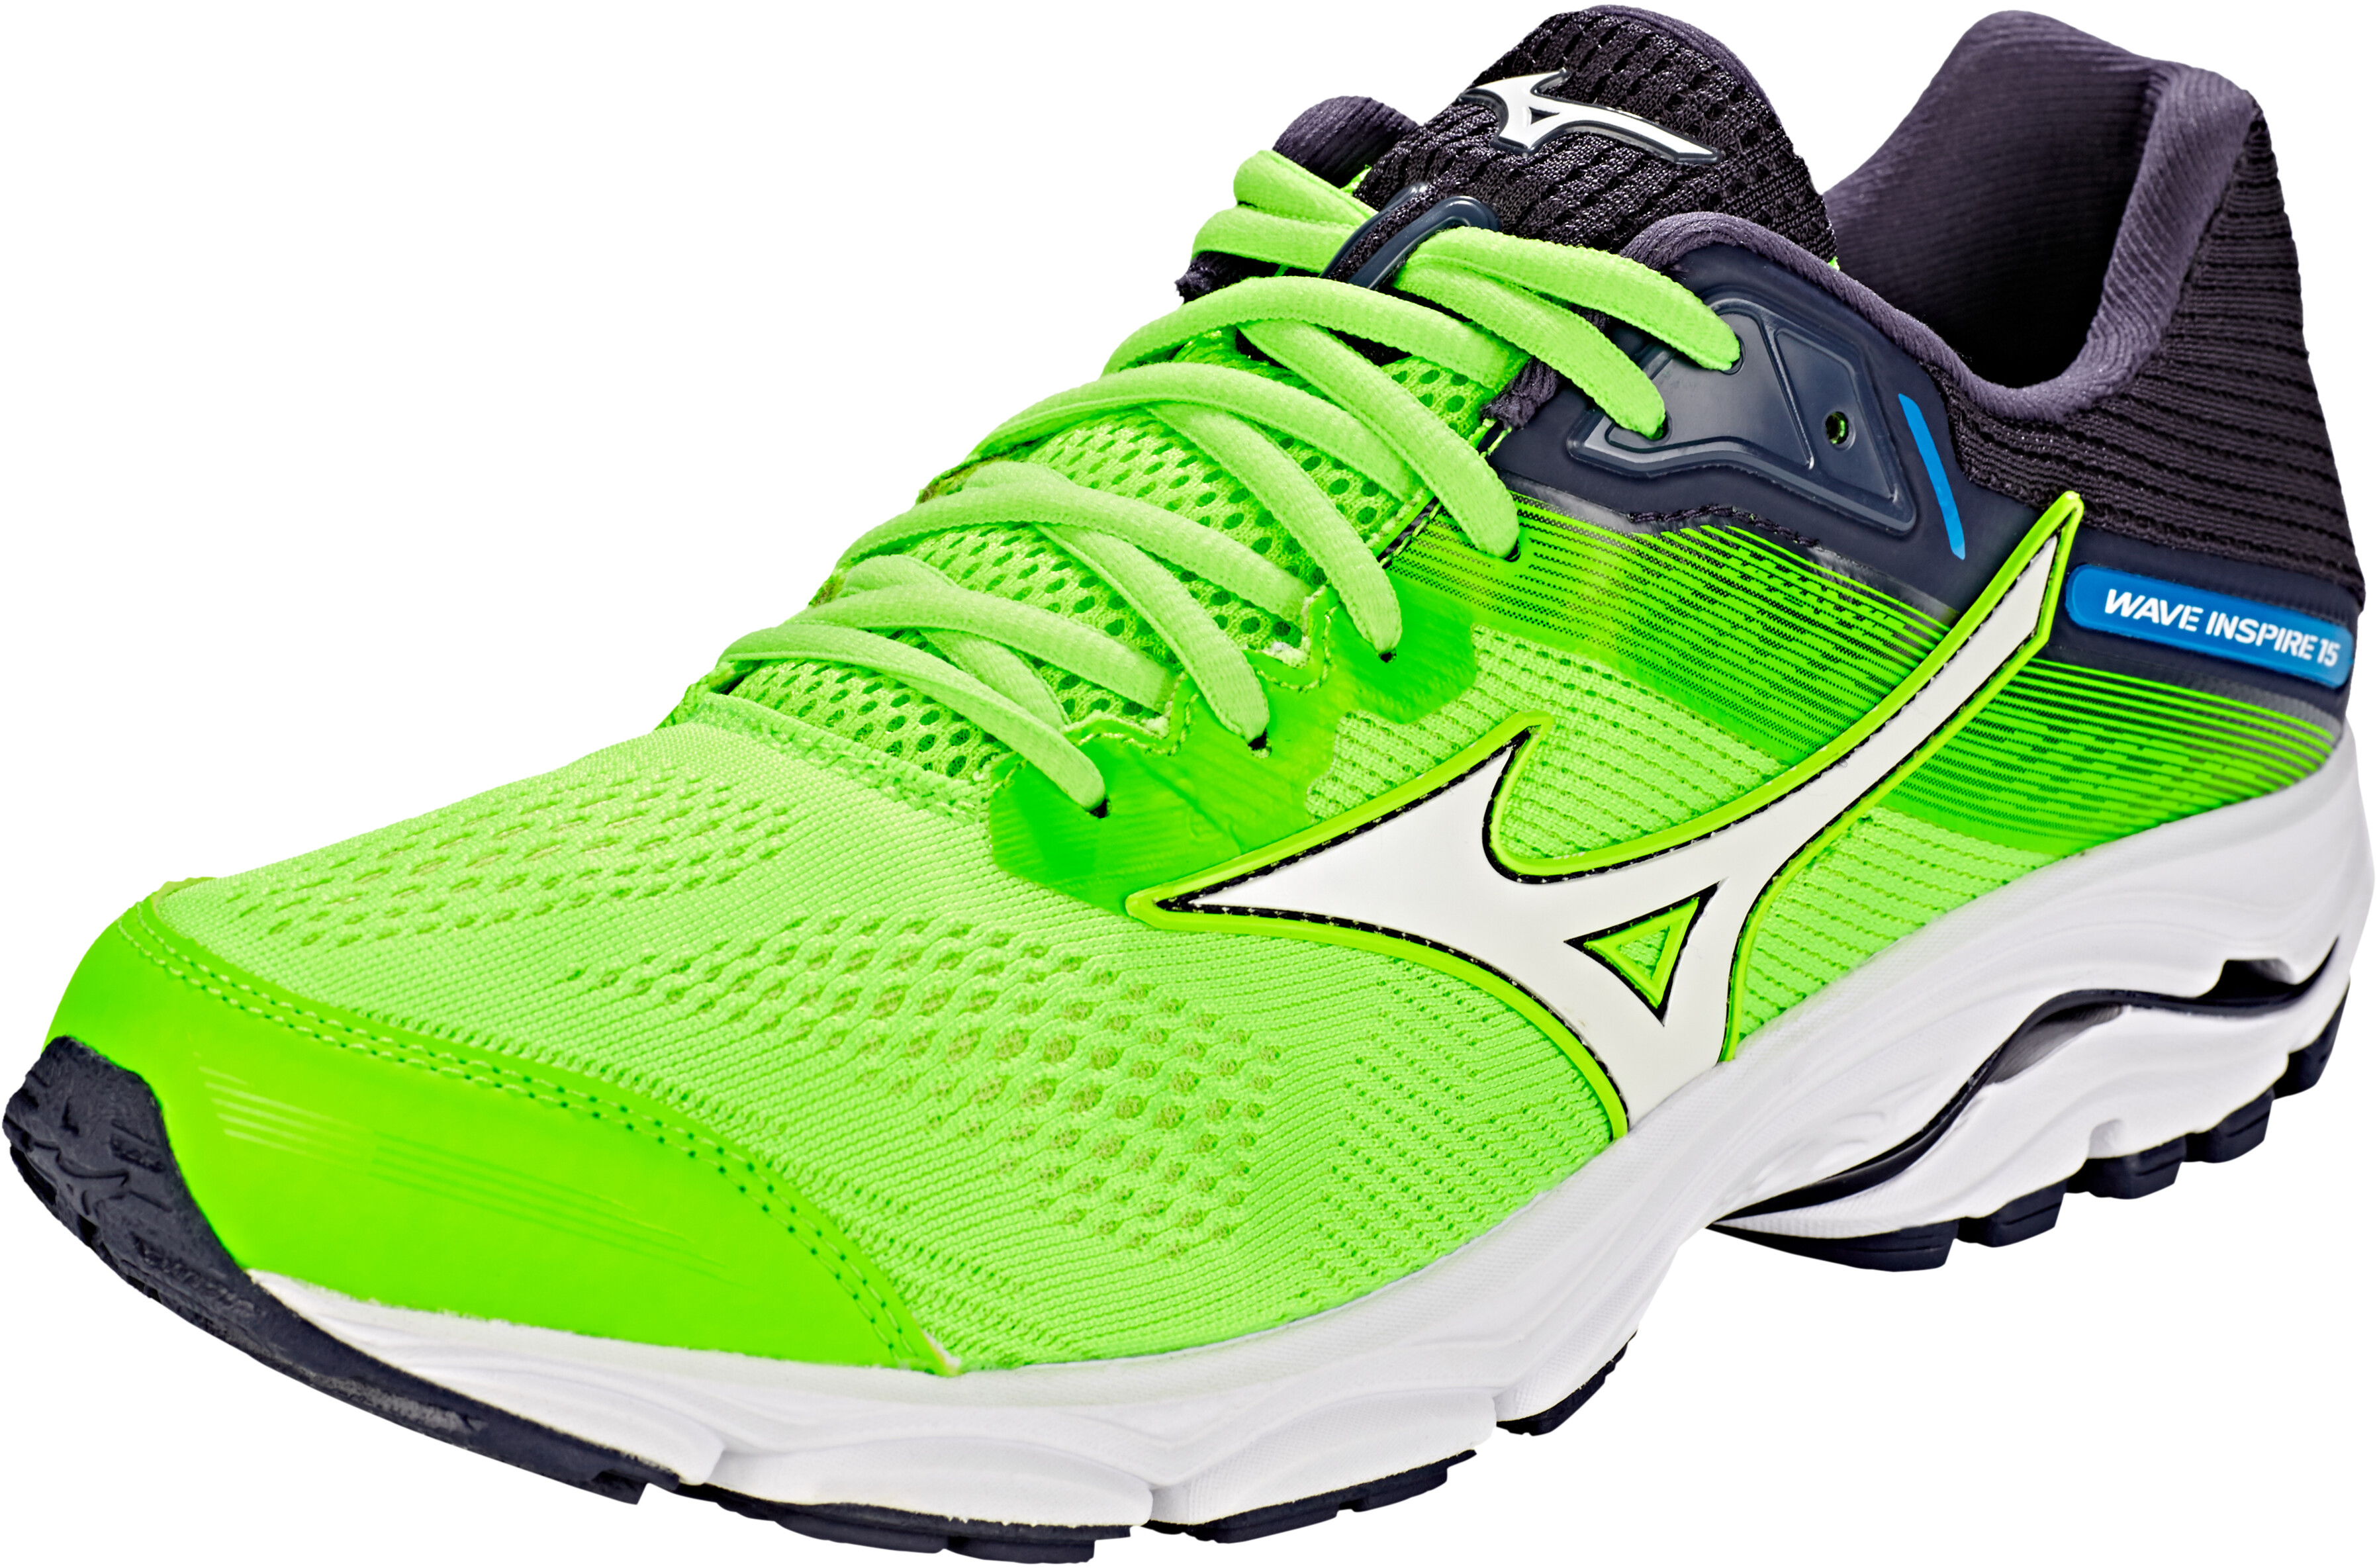 e5a2ee742f96 Mizuno Wave Inspire 15 Running Shoes Men green white at Addnature.co.uk